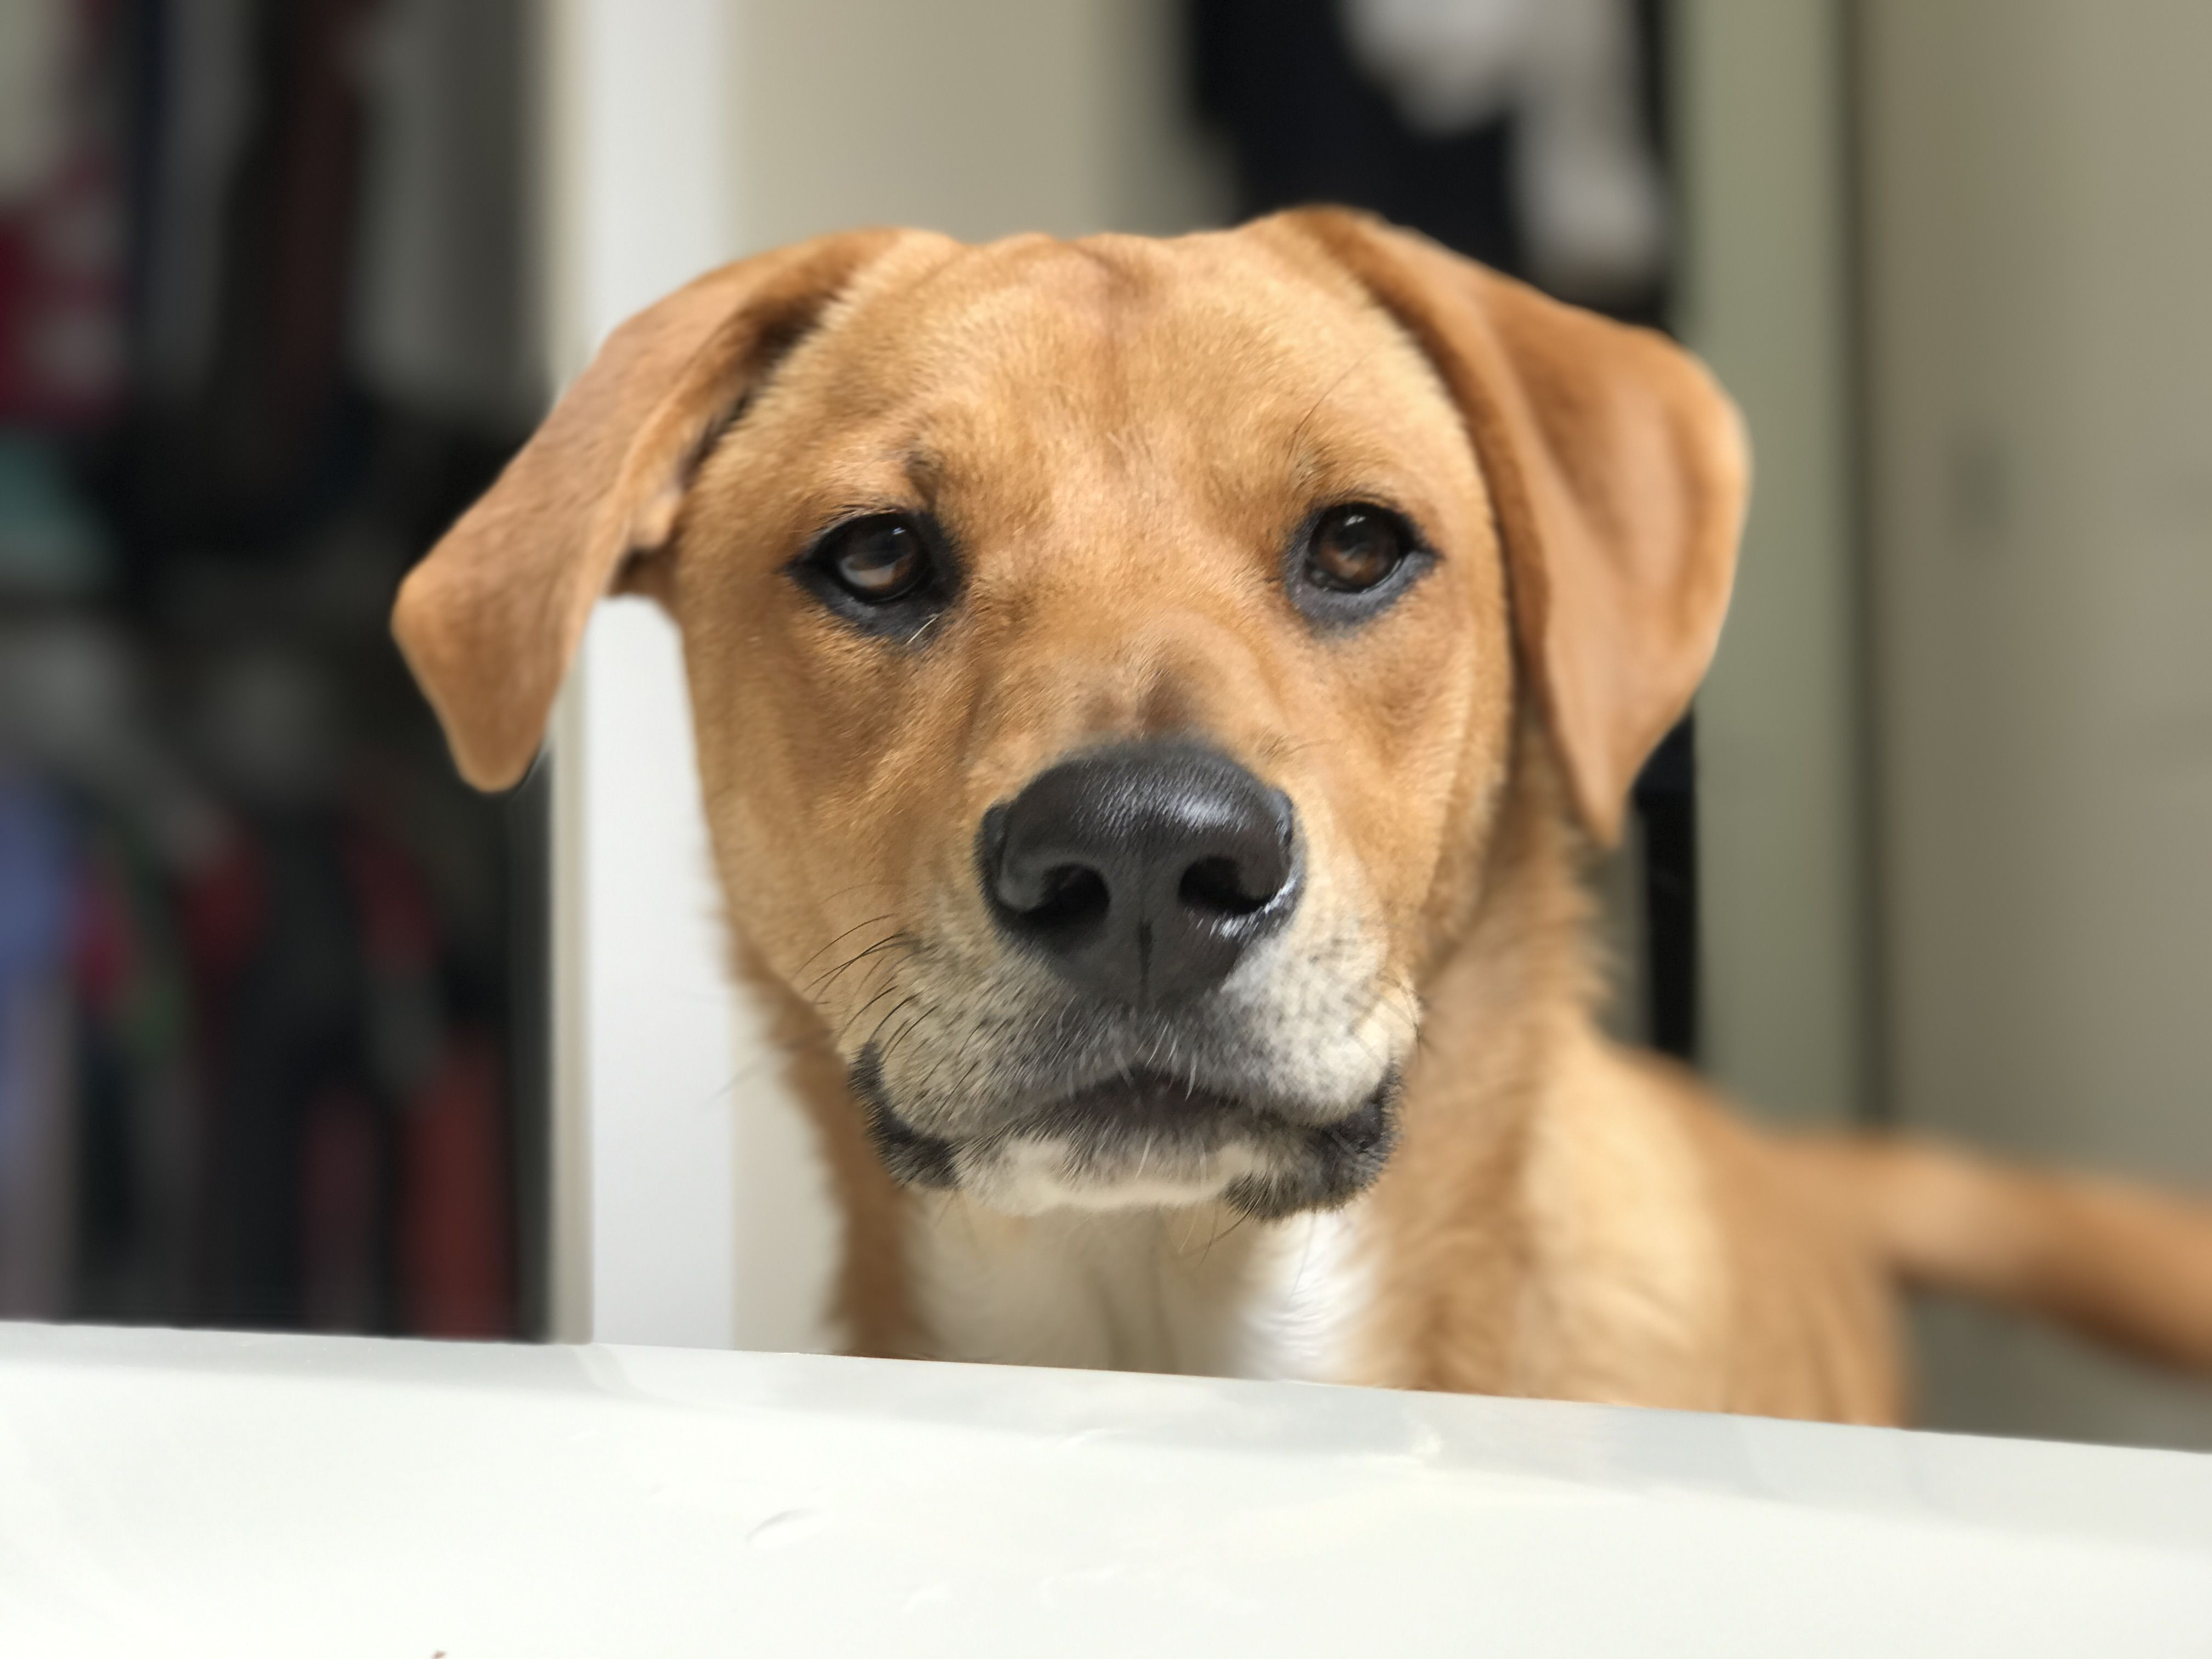 Labrador Retriever dog for Adoption in Bellevue, WA. ADN